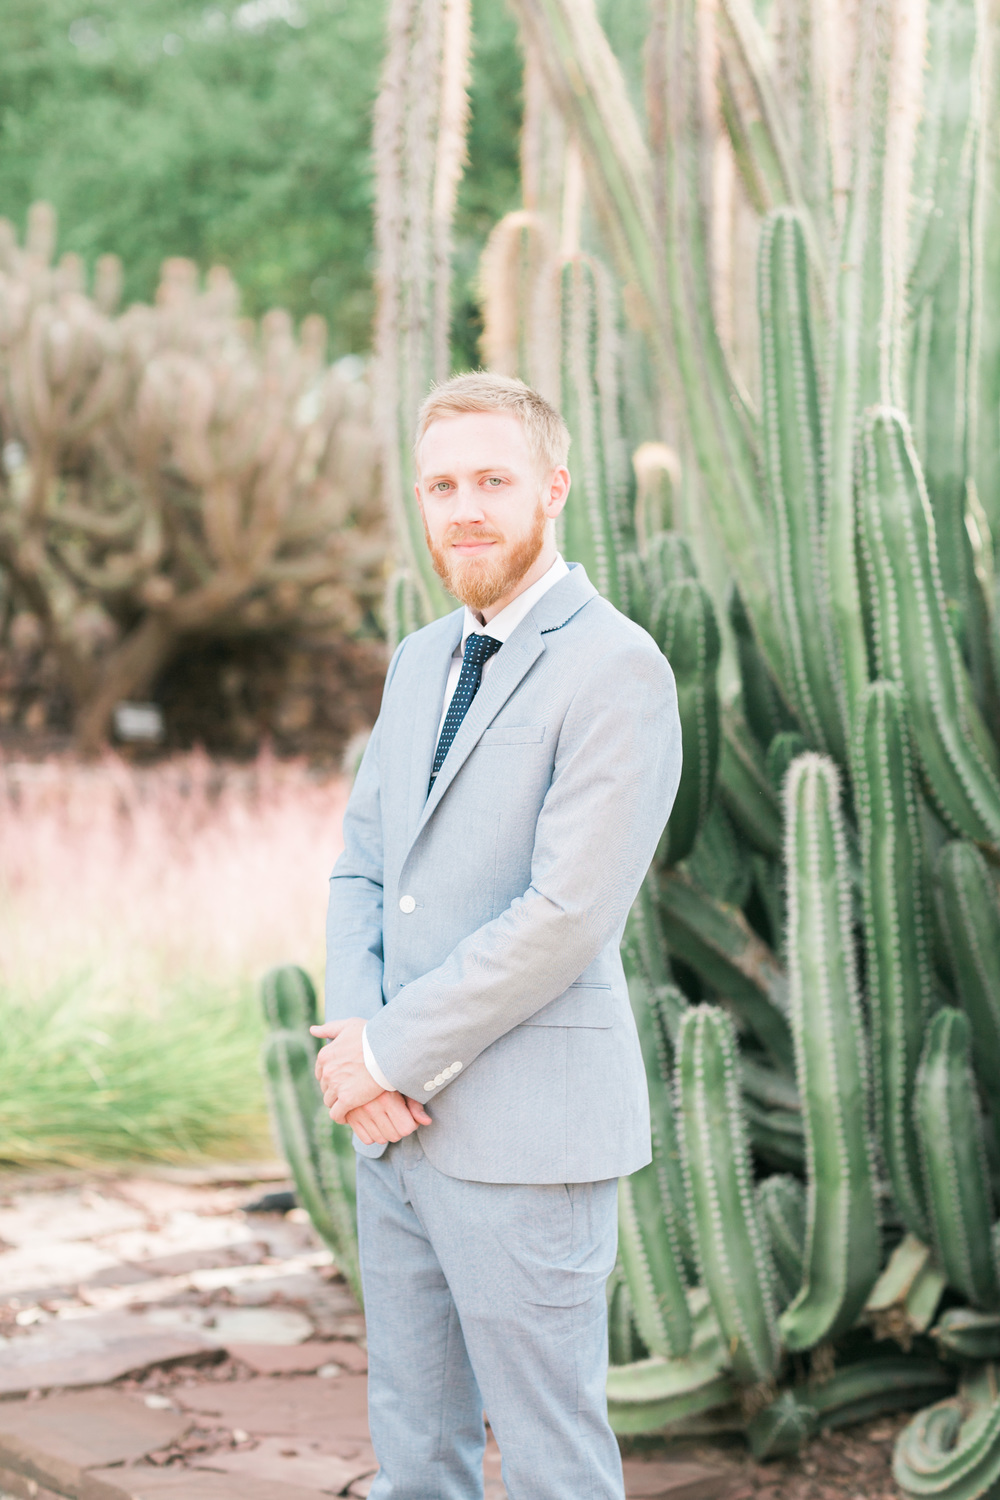 Groom in light blue suit with cactus in the background